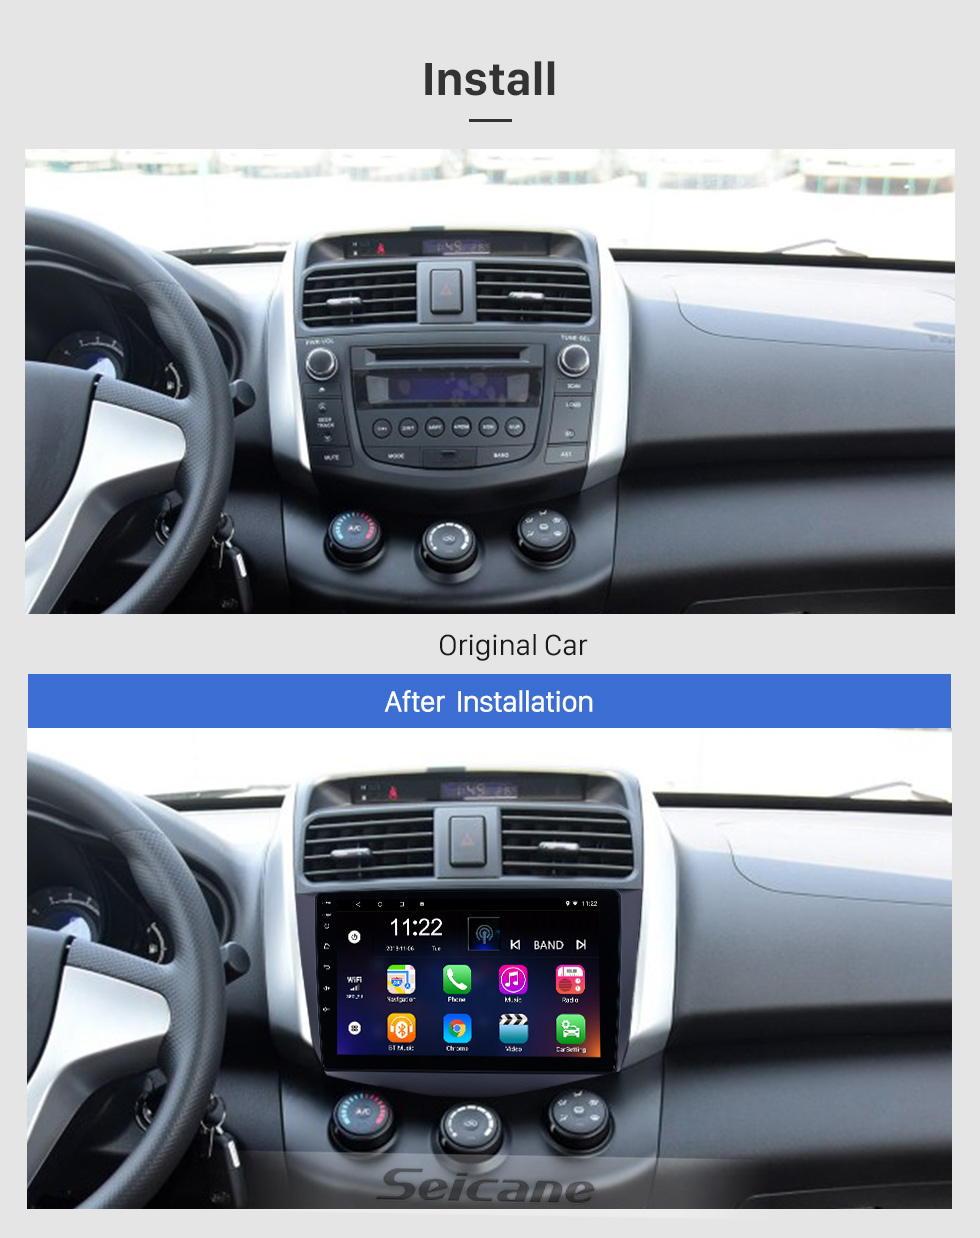 Seicane HD Touchscreen 9 inch Android 8.1 GPS Navigation Radio for 2011-2016 Lifan X60 with Bluetooth USB WIFI AUX support DVR Carplay SWC 3G Backup camera